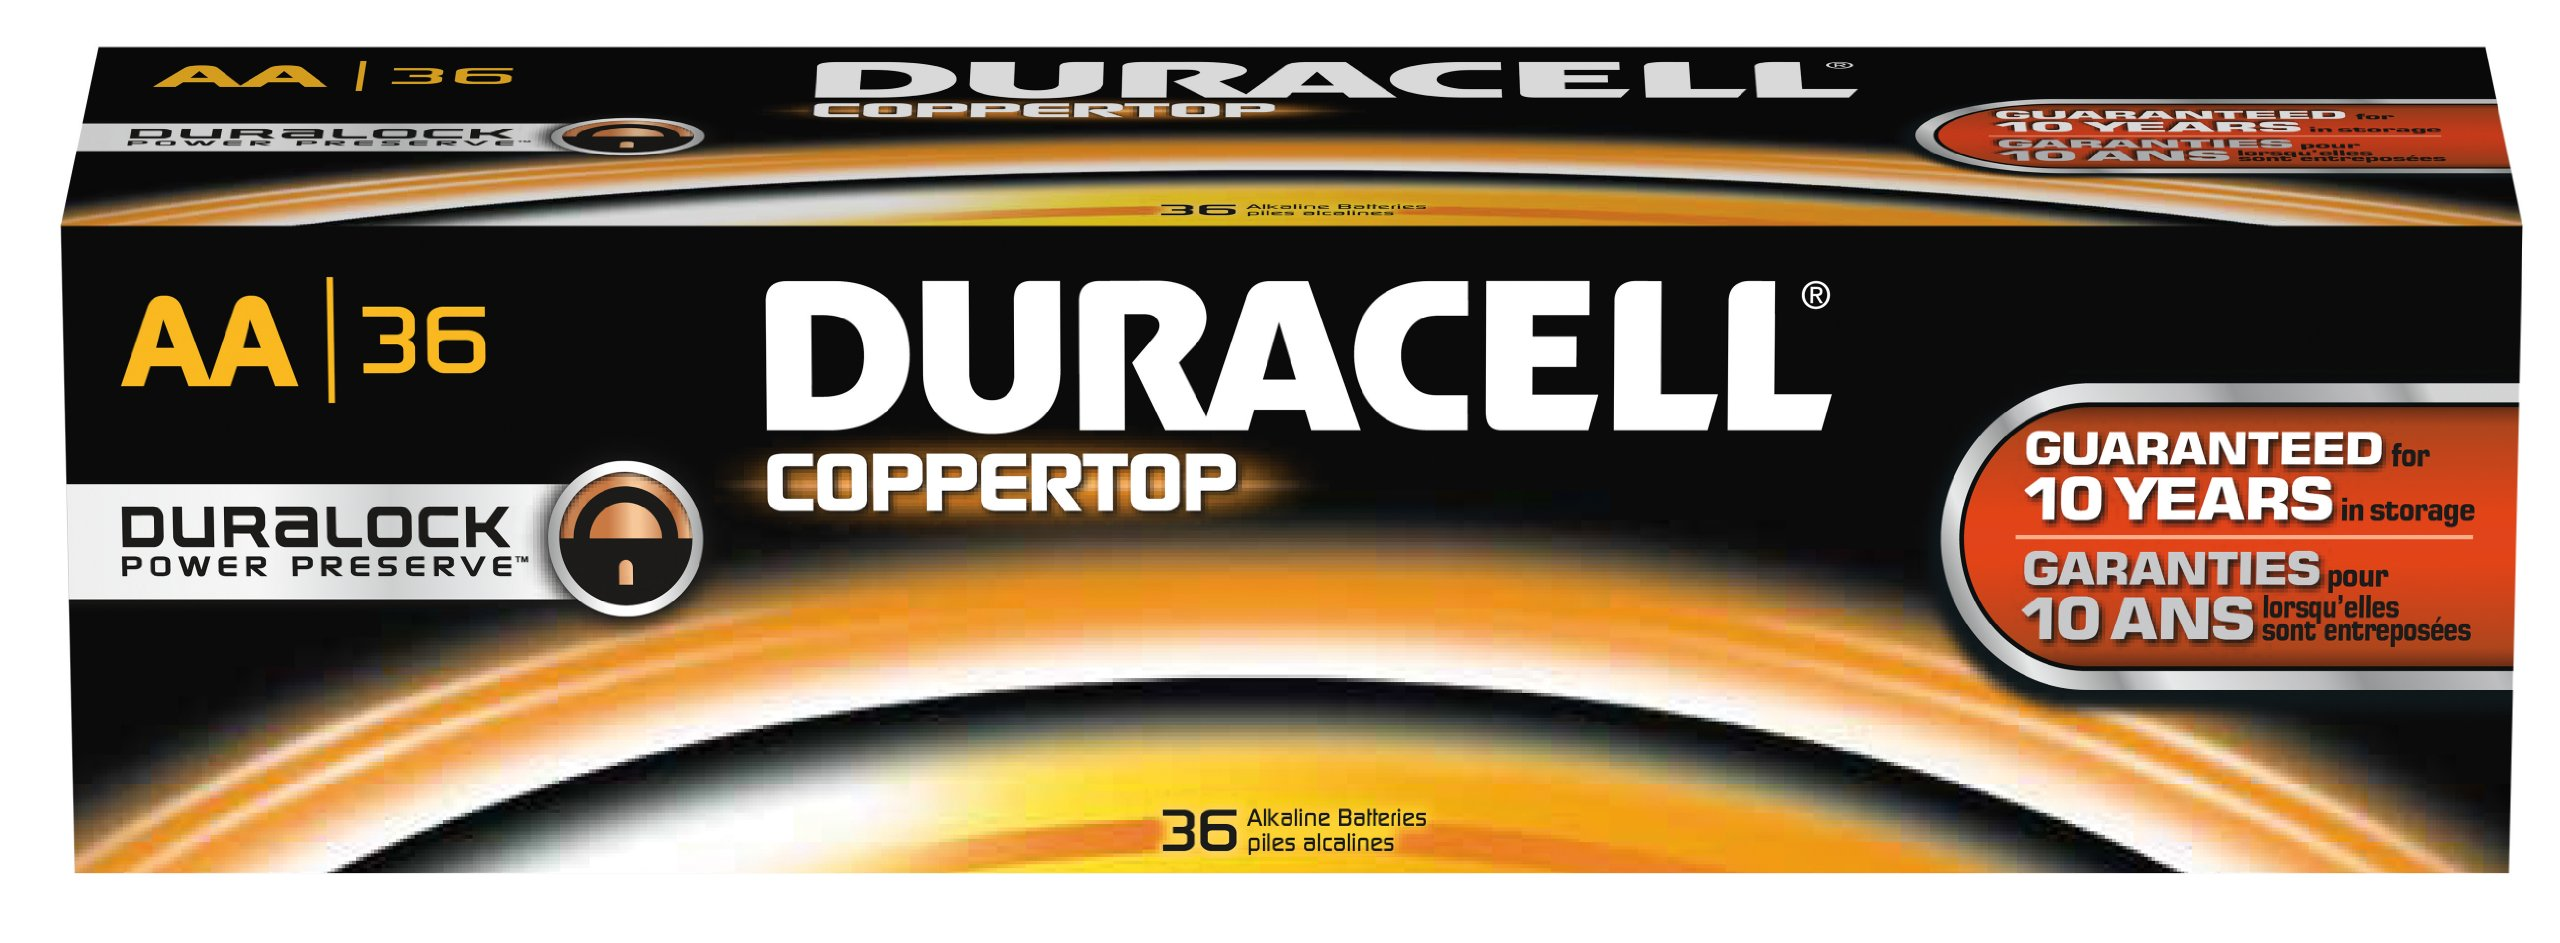 Duracell - CopperTop AA Alkaline Batteries - long lasting, all-purpose Double A battery for household and business - Pack of 36